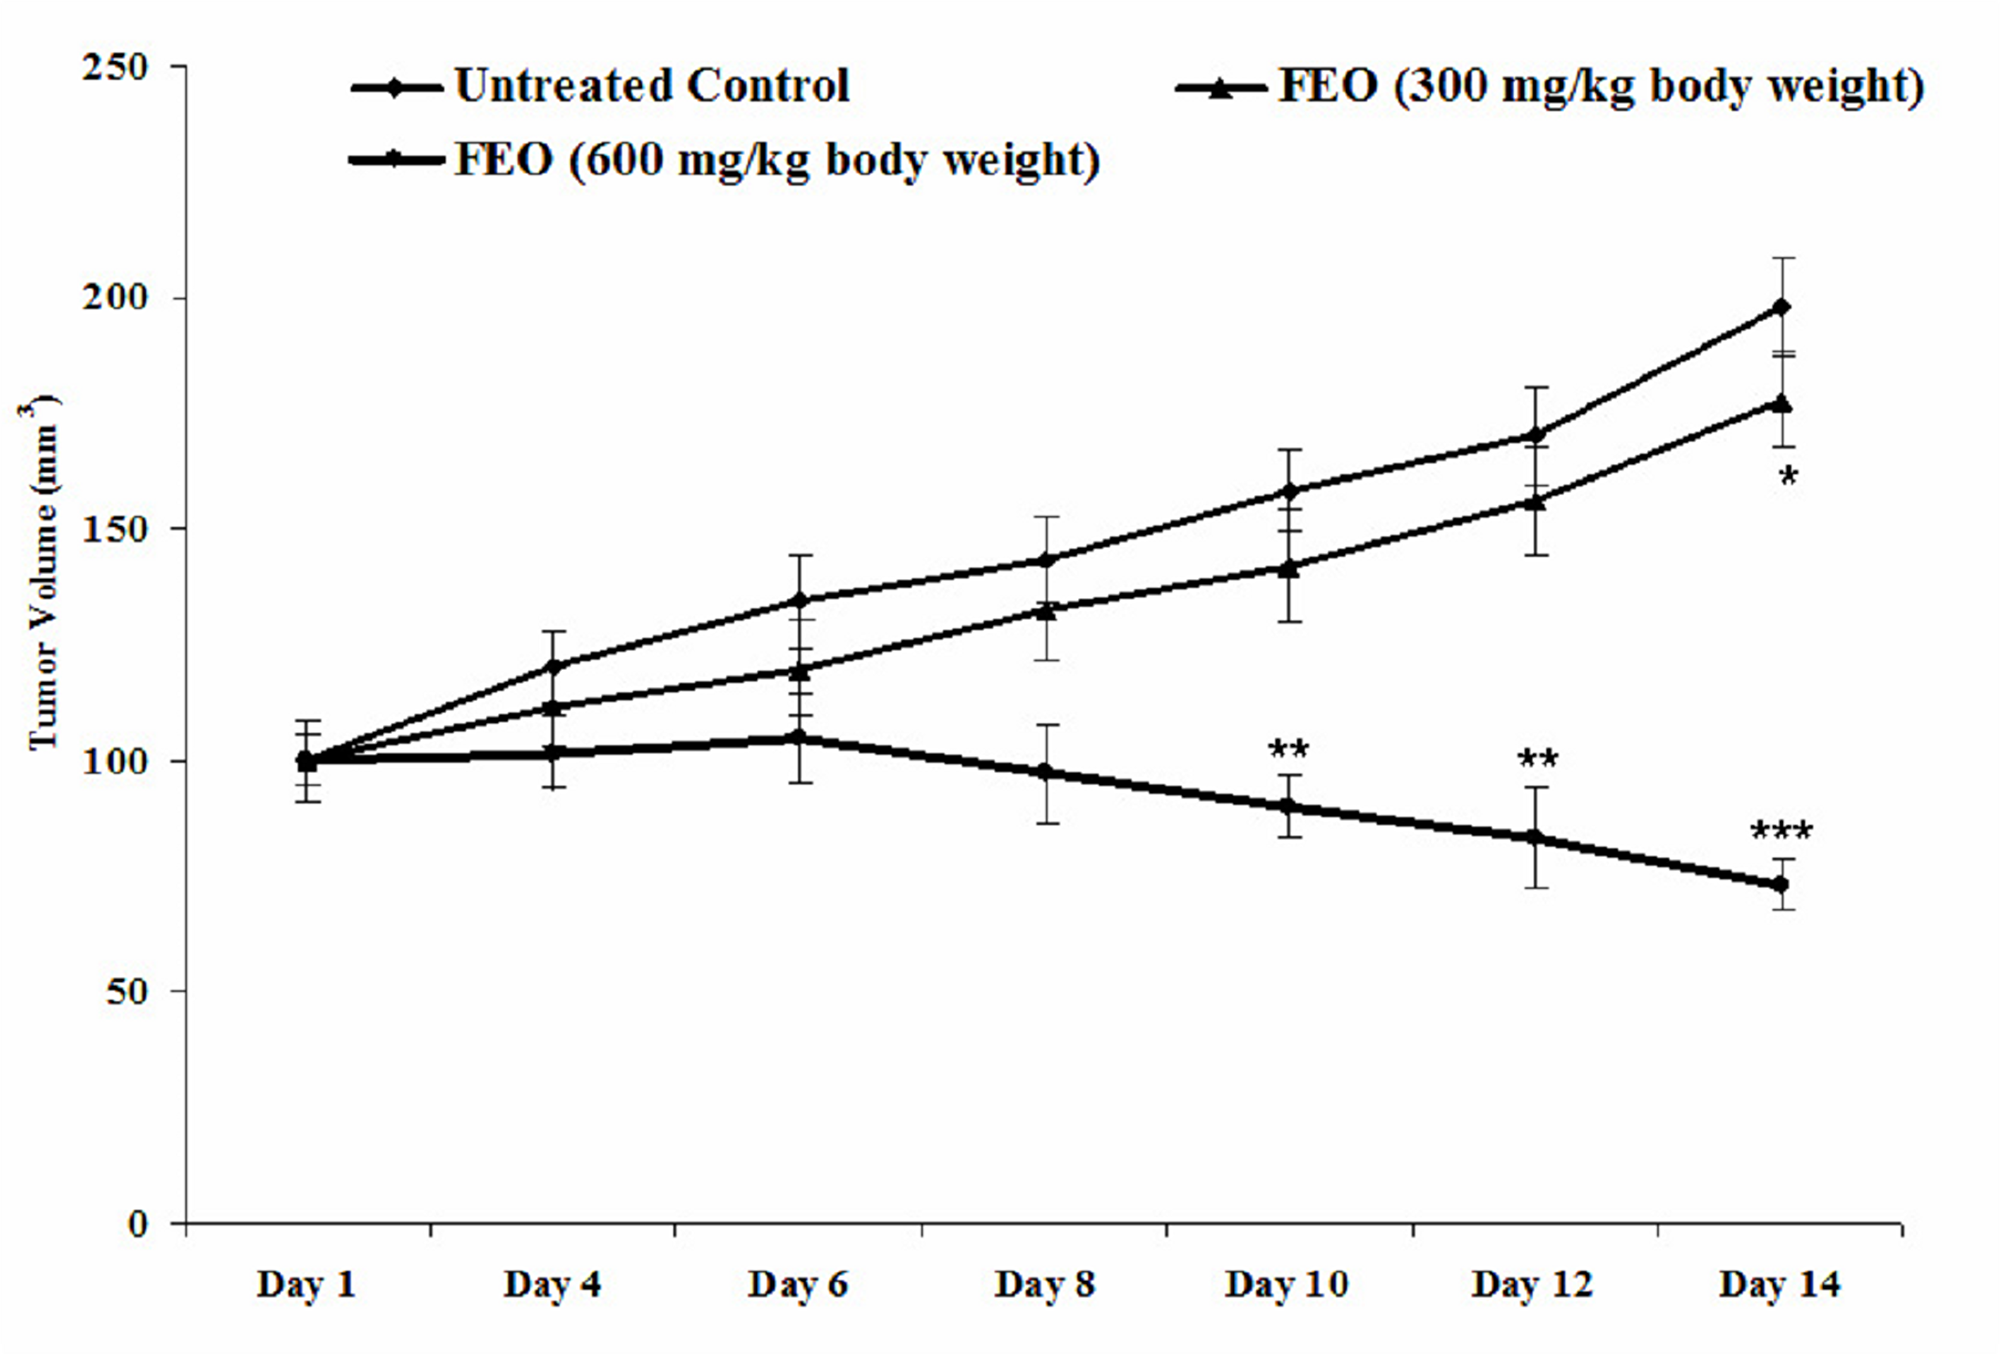 Melanoma tumor remission efficacy of FEO: Data presented as mean ± SD (n = 6).